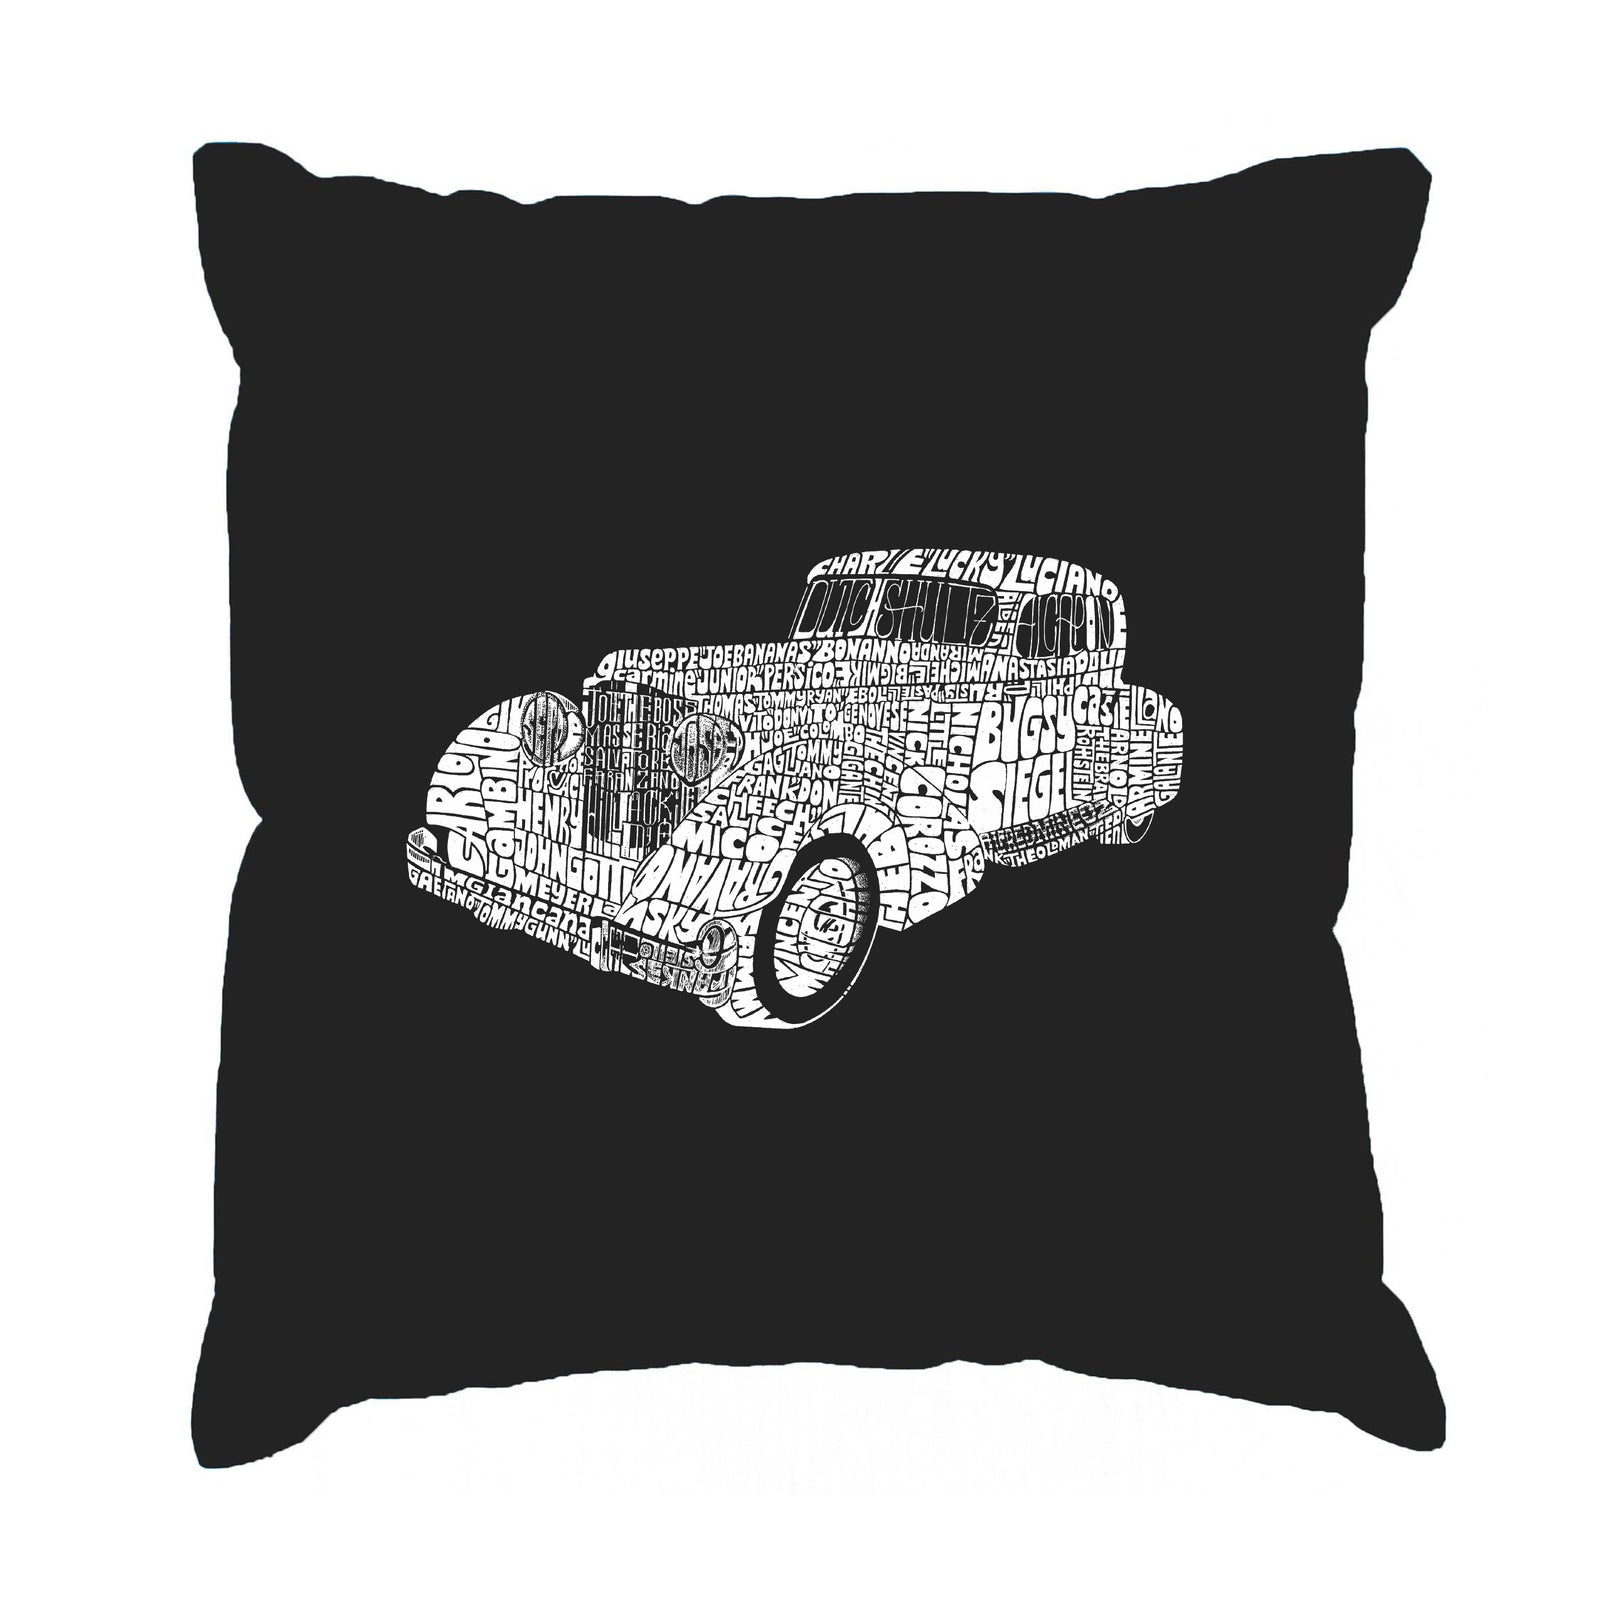 Throw Pillow Cover - Mobsters